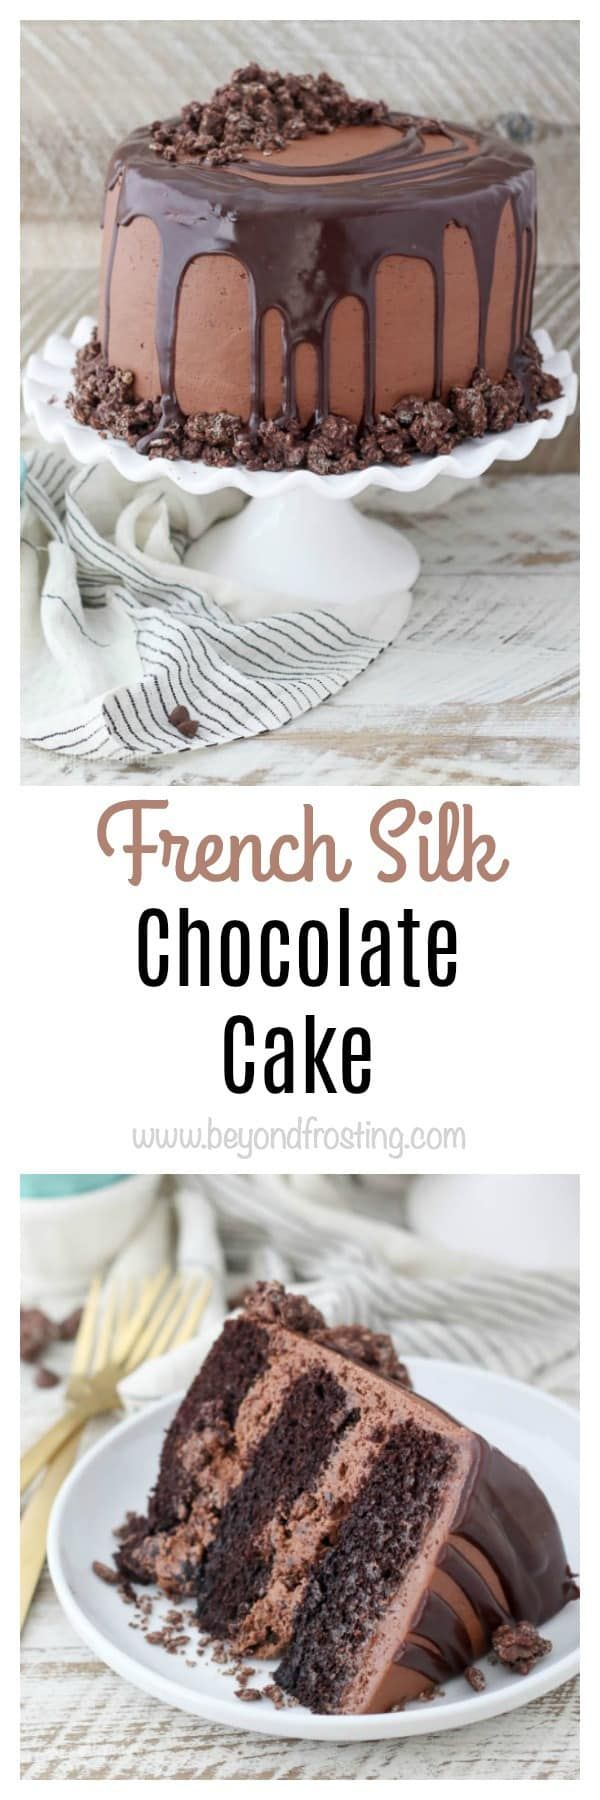 Sink your teeth into this French Silk Chocolate Cake. A moist chocolate cake with a French Silk chocolate frosting and a crunchy chocolate filling.